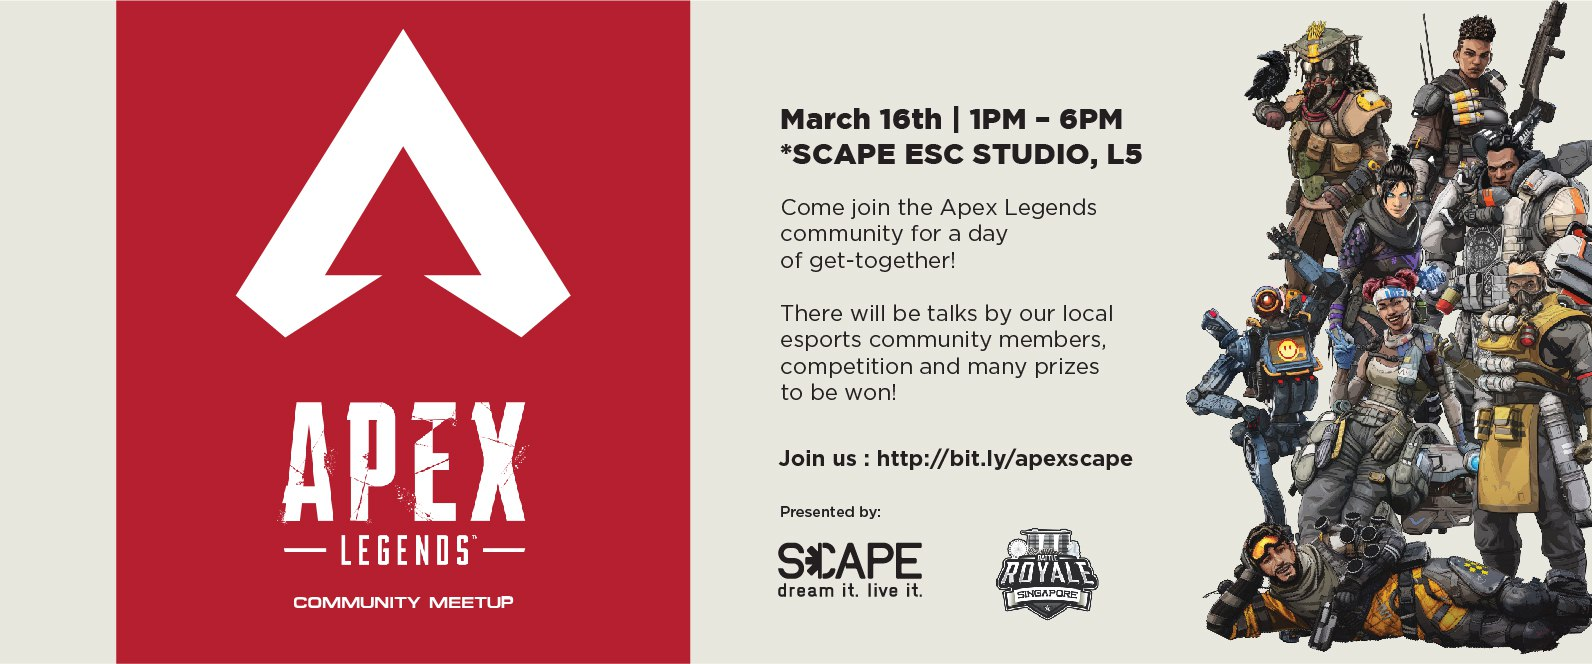 Apex Legends Community Meet Up Scape Singapore